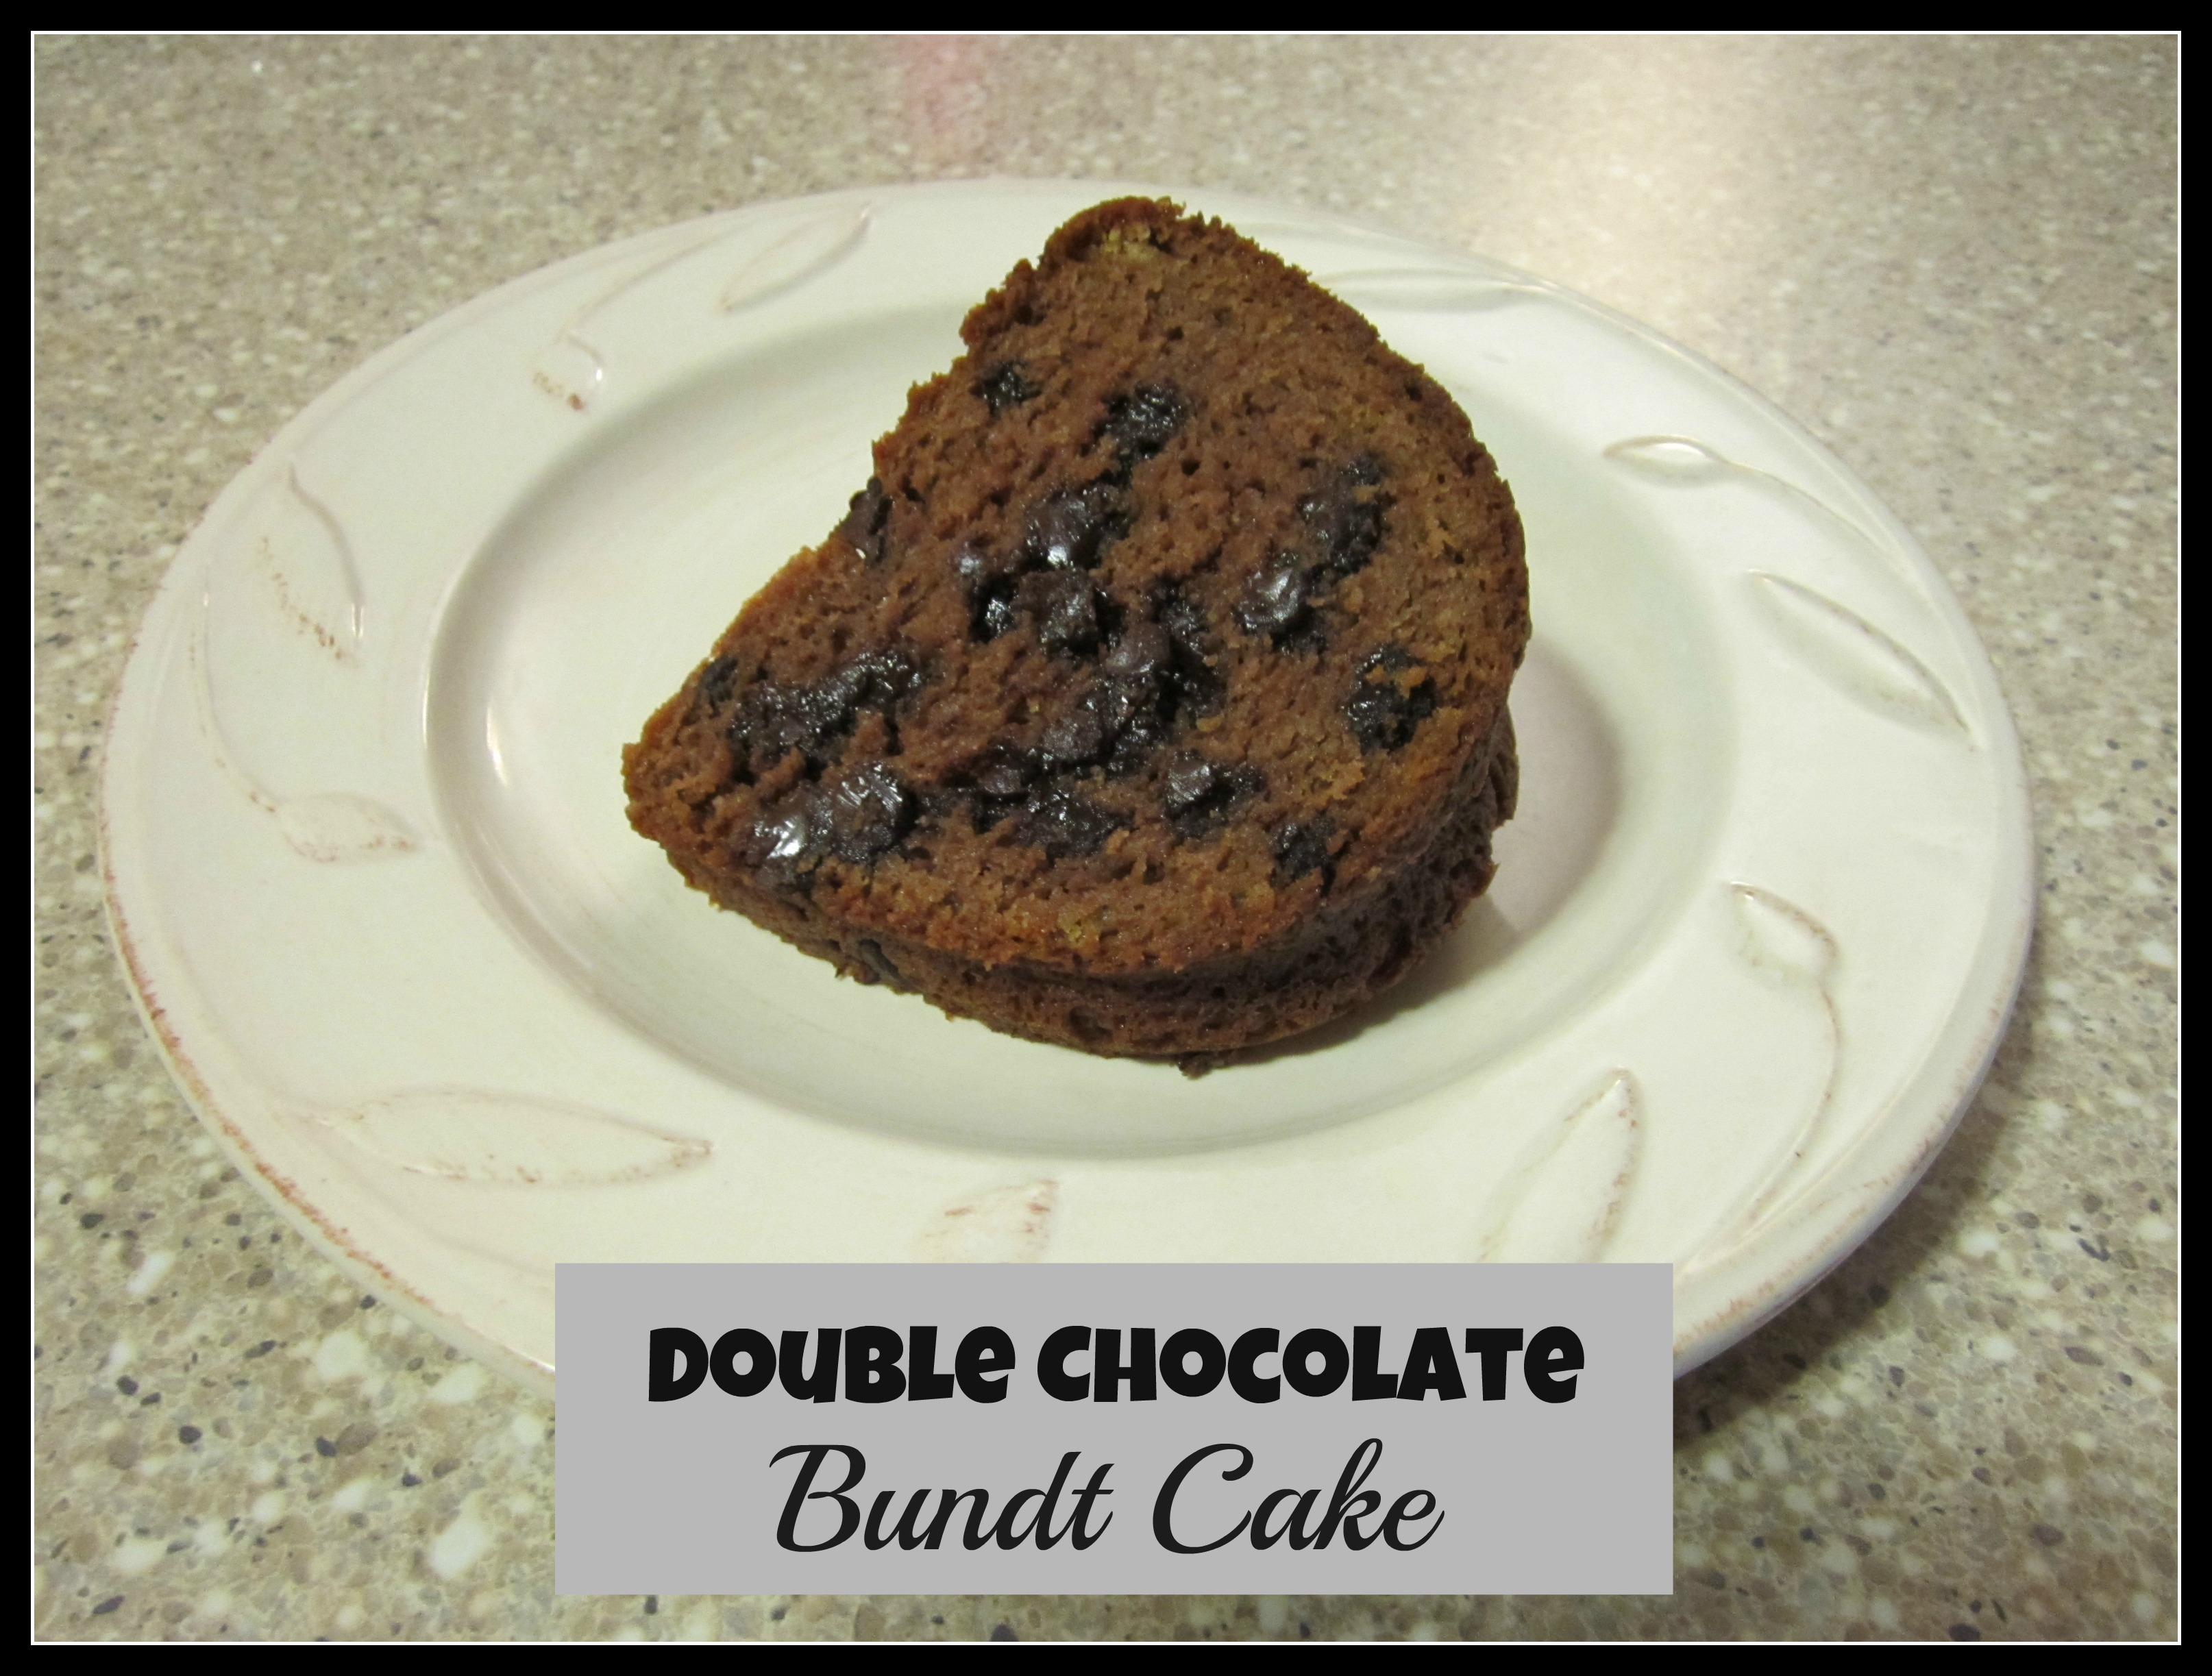 Tags: cakes , chocolate chips , pintrest , recipes